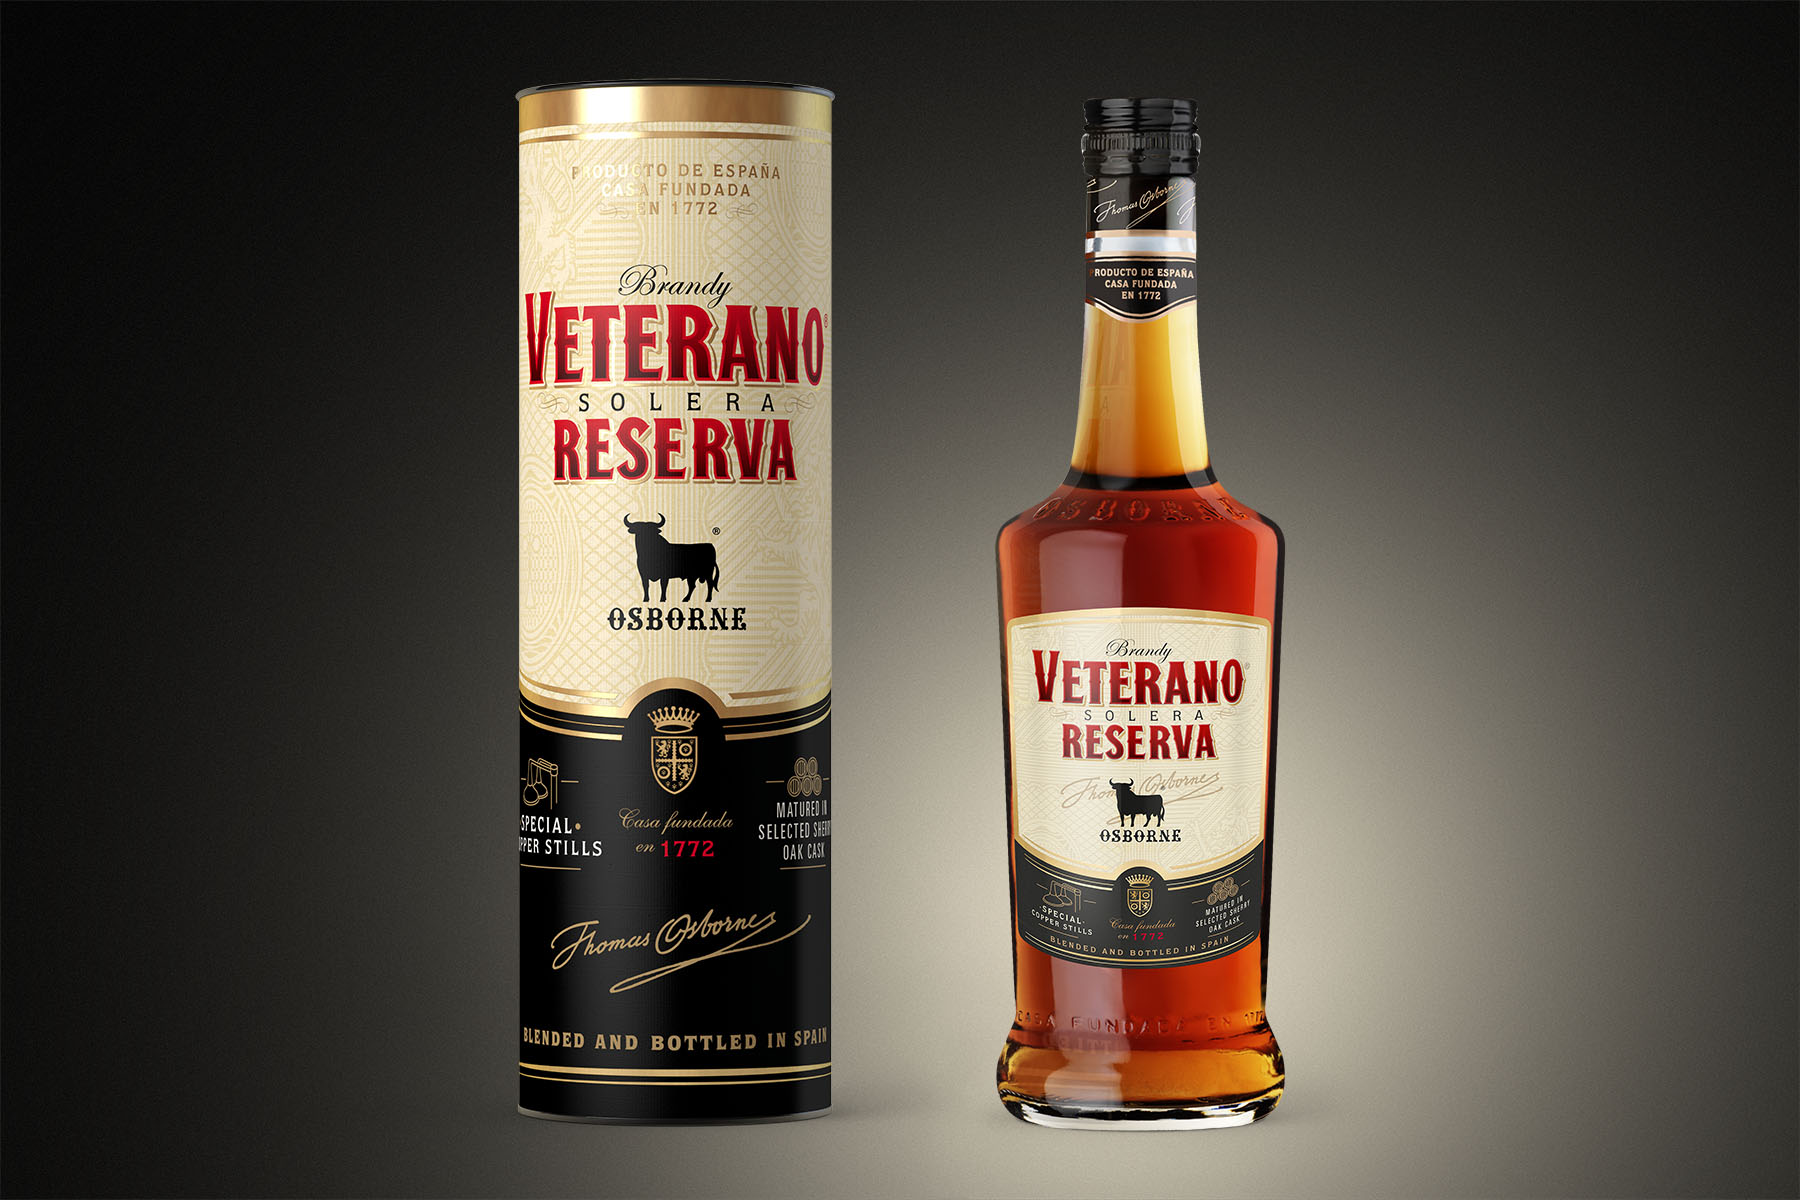 Packaging Brandy Veterano